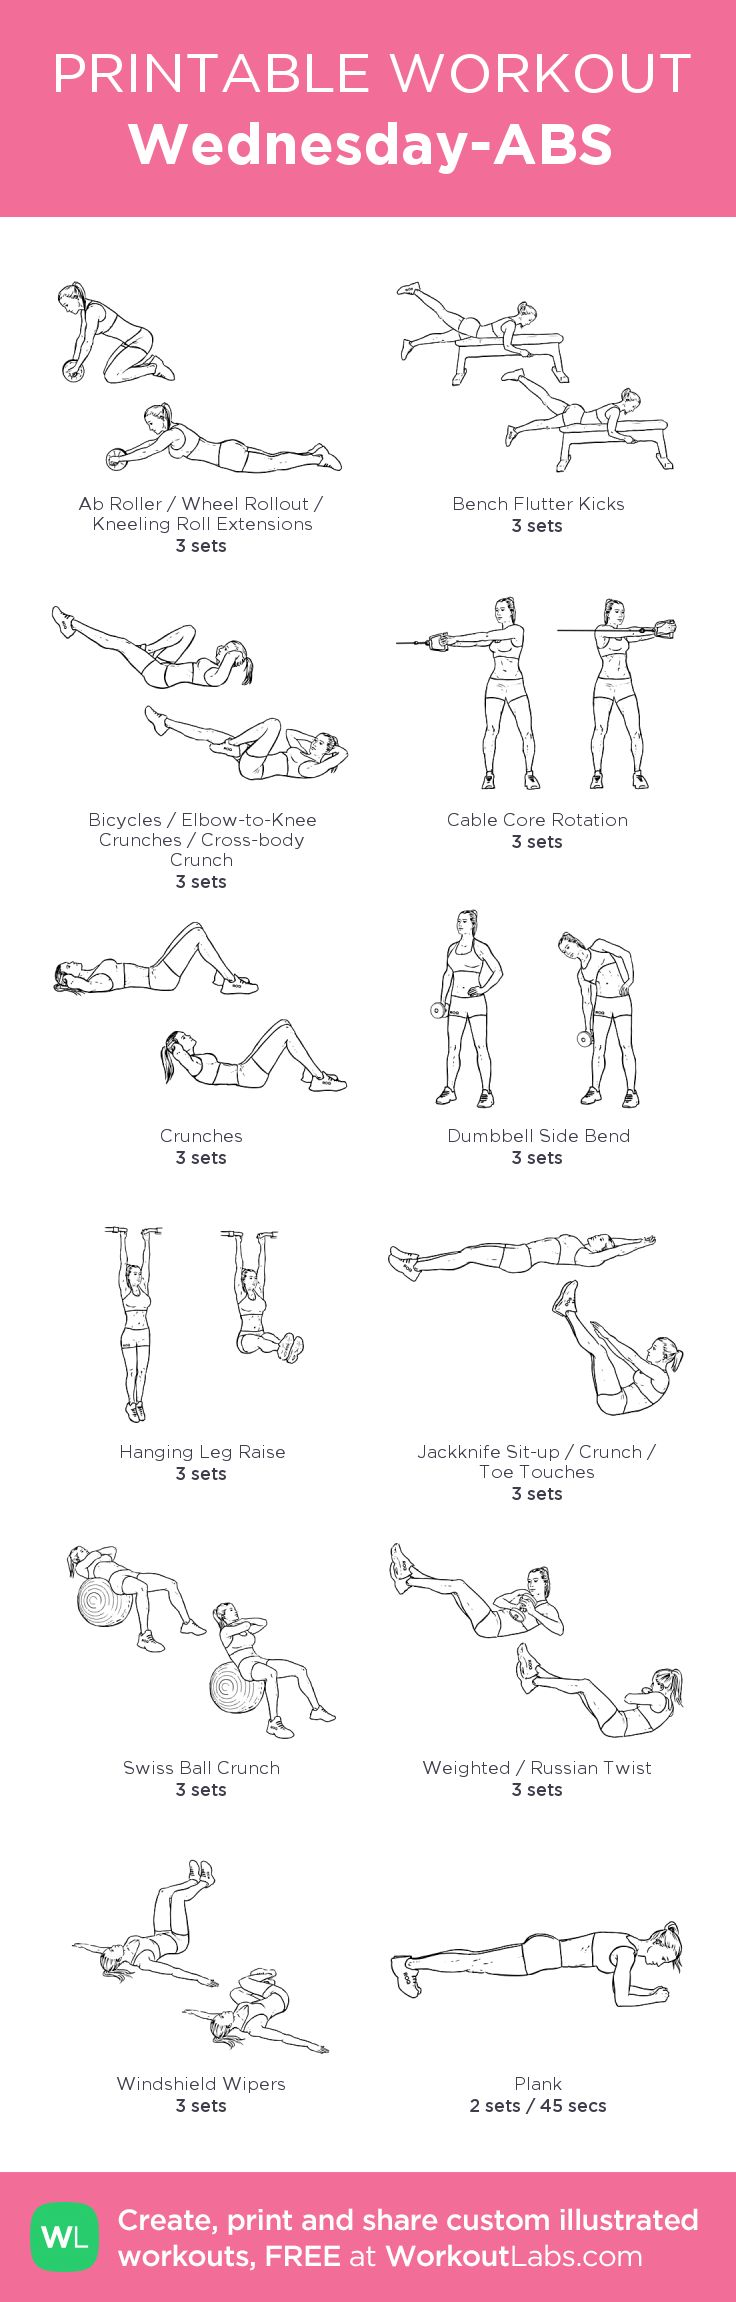 Wednesday-ABS: my visual workout created at WorkoutLabs.com • Click through to customize and download as a FREE PDF! #customworkout